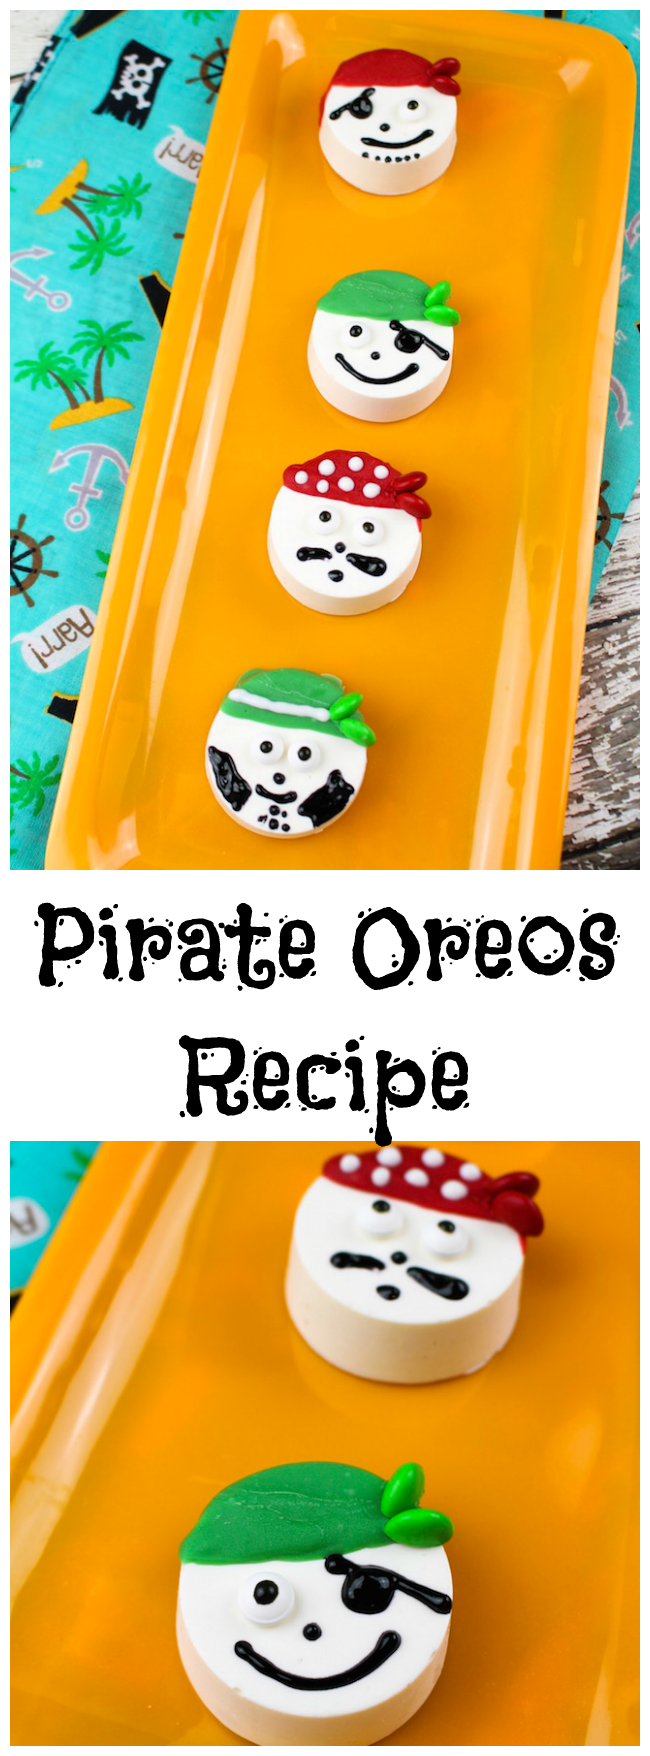 """In honor of National """"talk like a pirate day"""" (Sept. 19) we have a fun Pirate Oreos recipe for you. The kids will love them."""